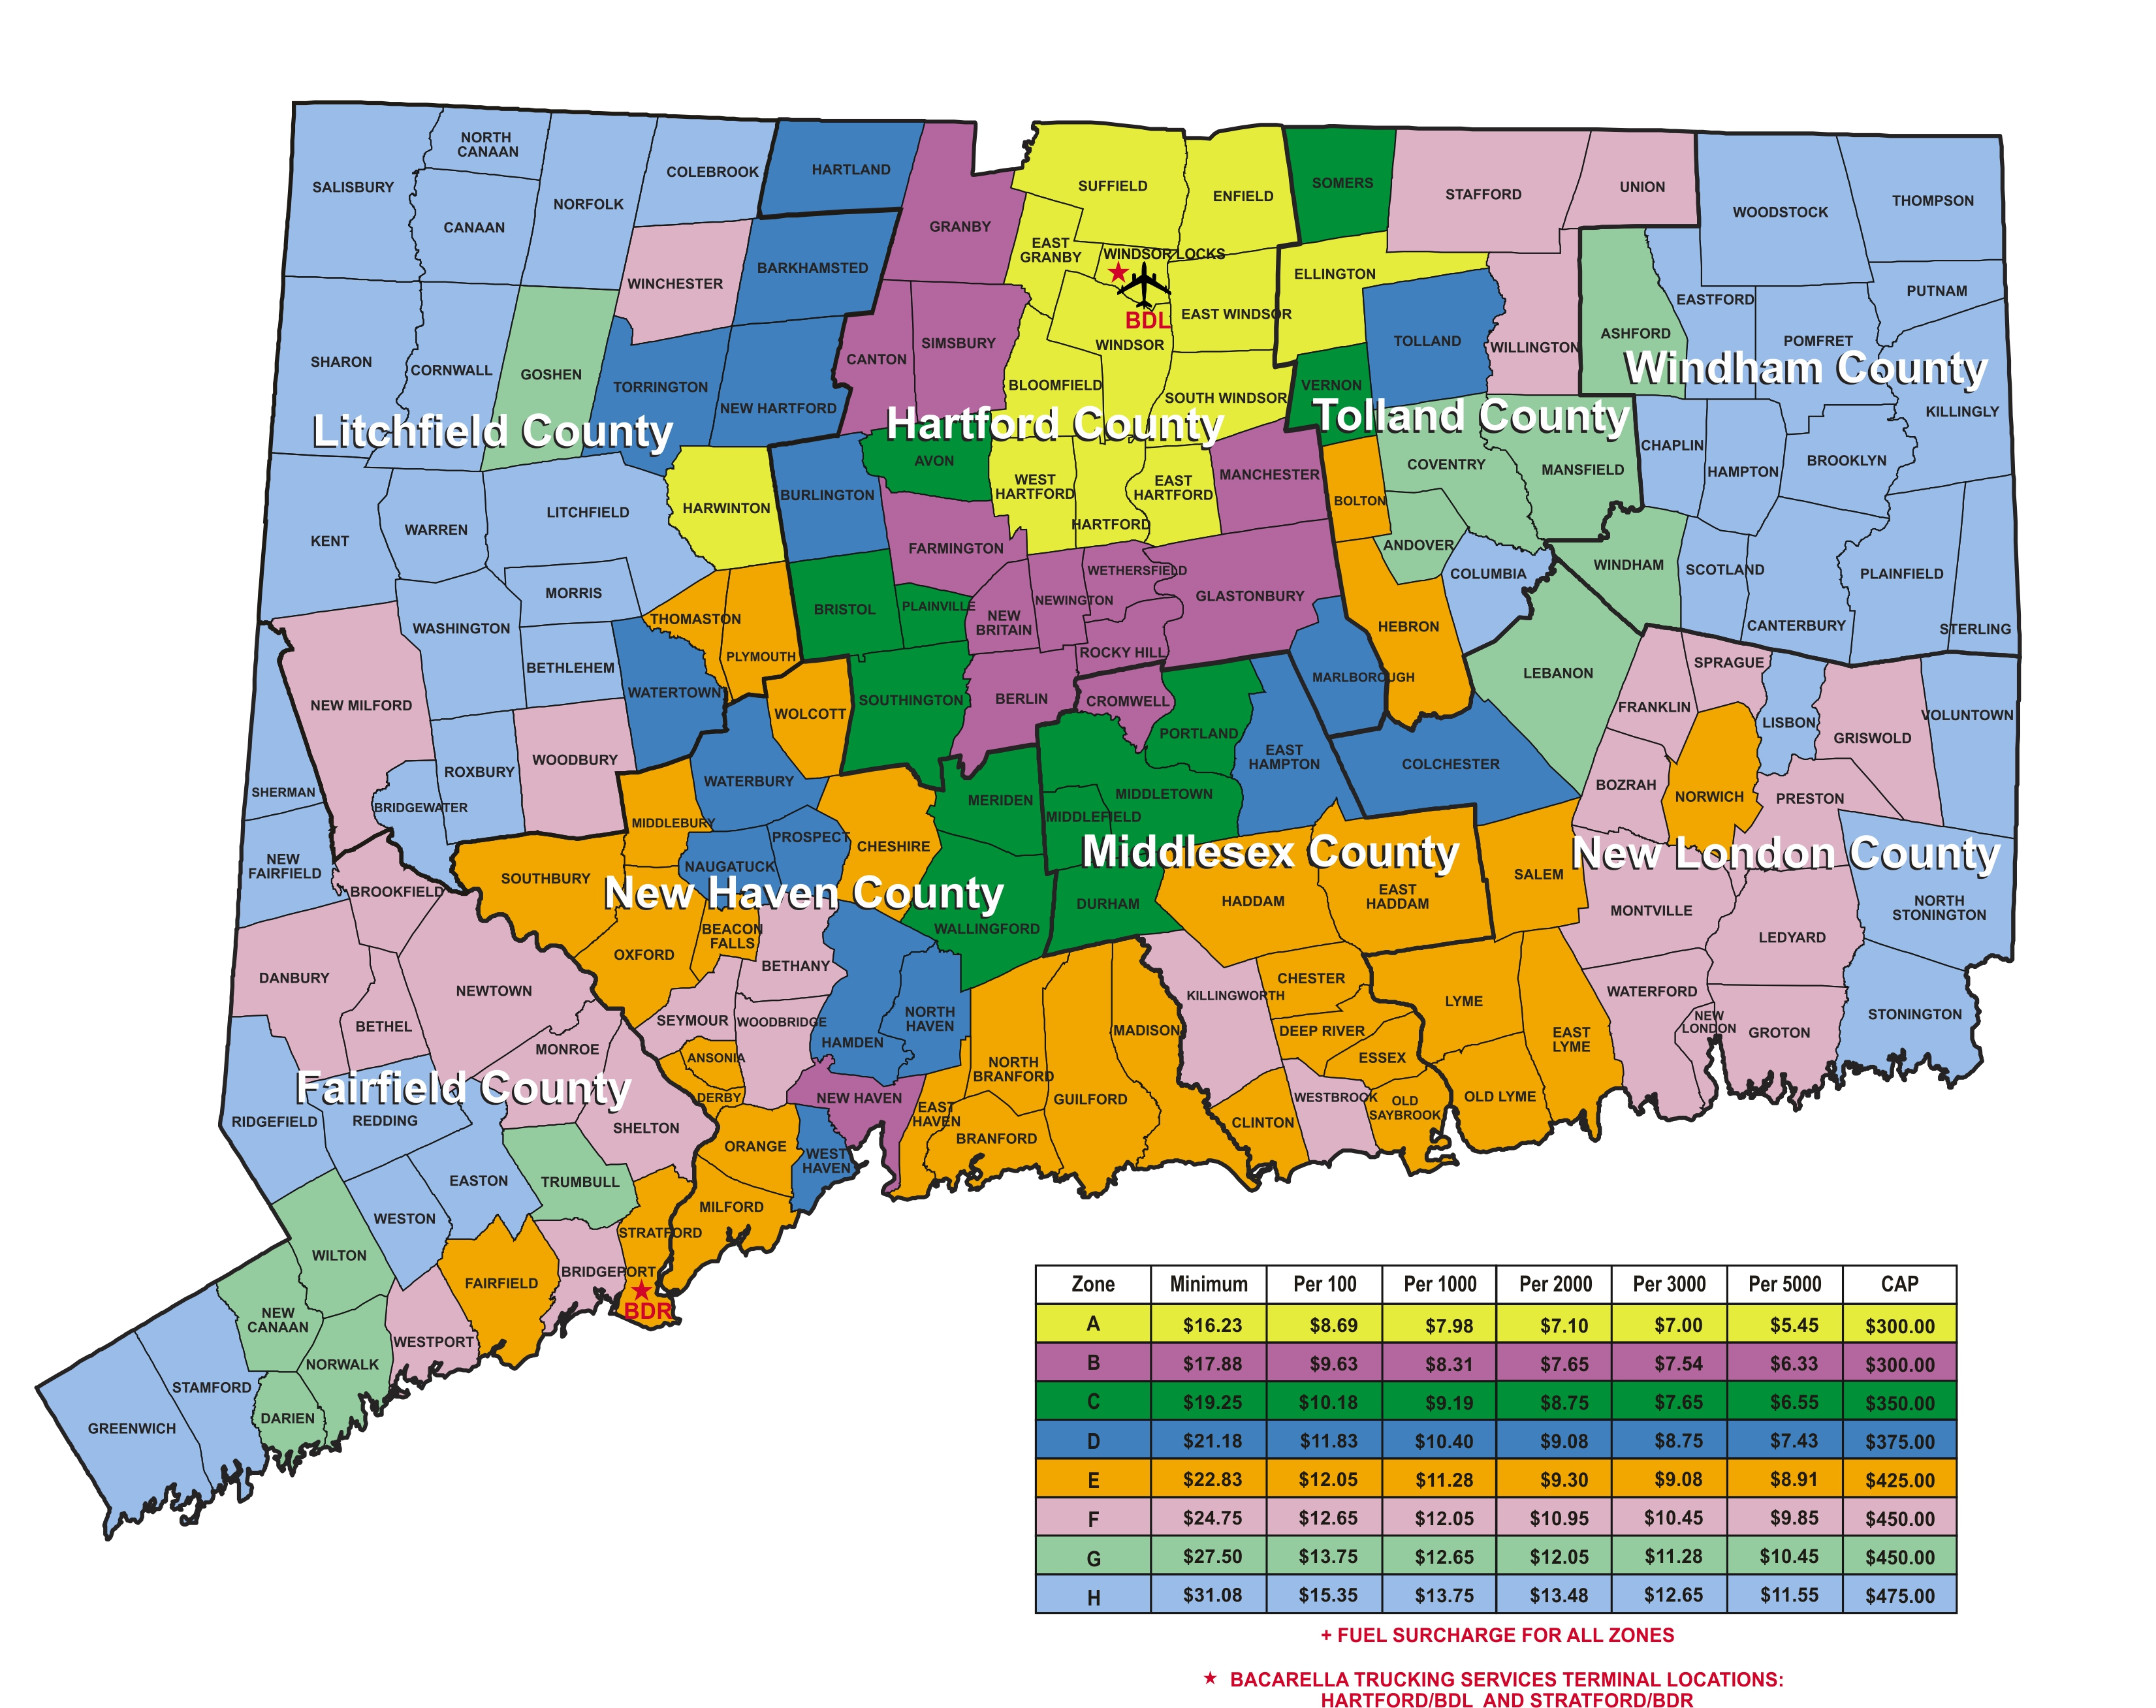 Similiar Map Of Ct Towns And Counties Keywords